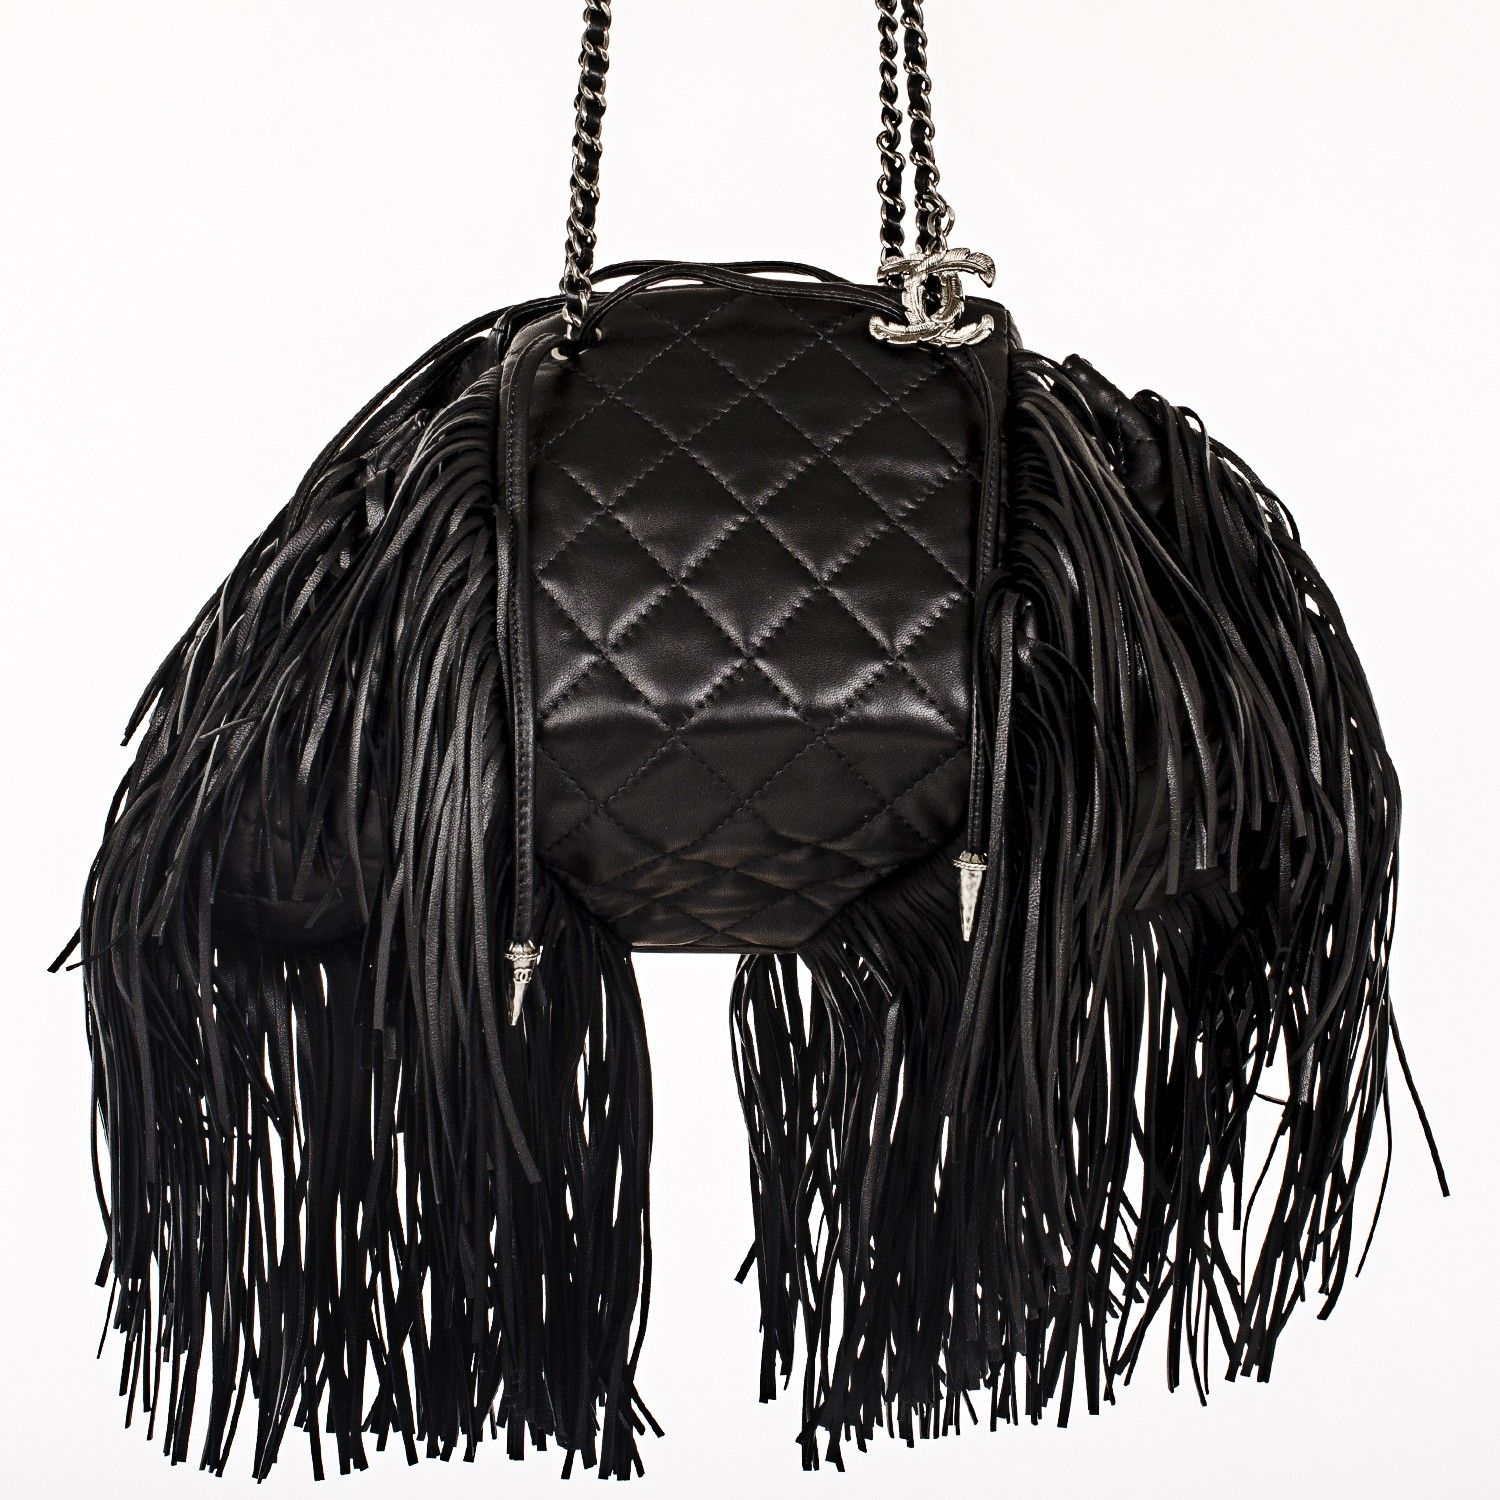 Chanel Black Quilted Lambskin Dallas Drawstring Runway Fringe Bag Chanel Black Quilted Lambskin Dallas Drawstring Runw Fringe Bags Chanel Black Chanel Fringe